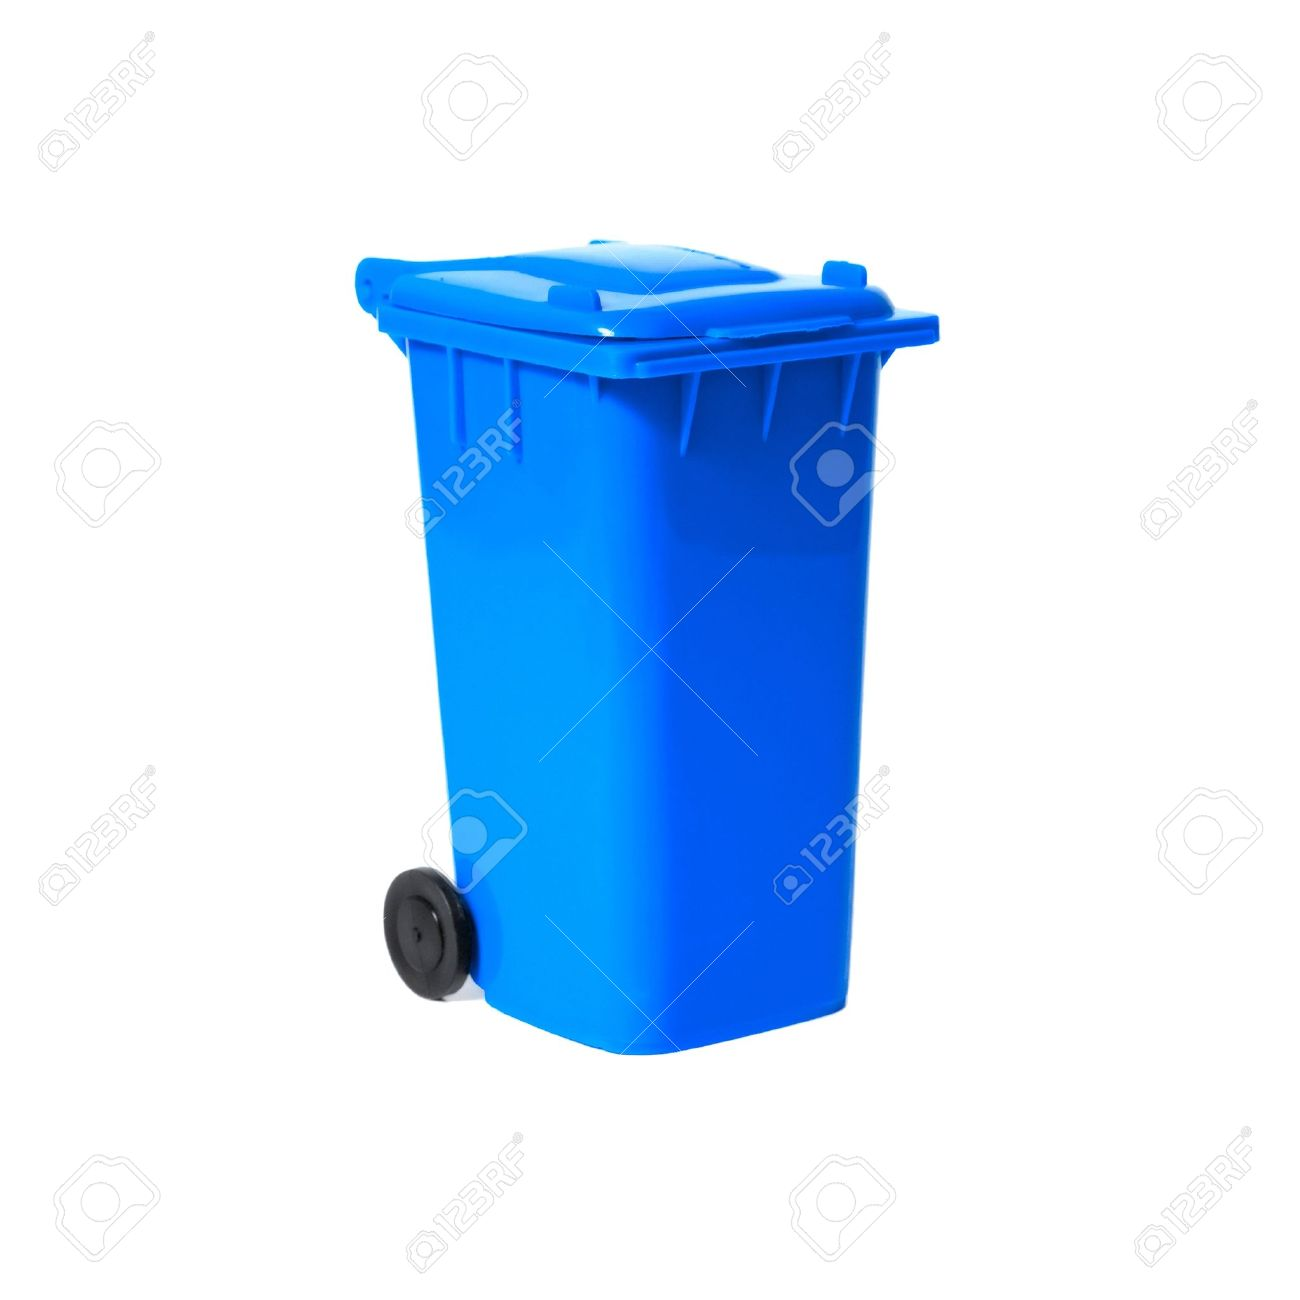 Blue Empty Recycling Bin Stock Photo, Picture And Royalty Free.